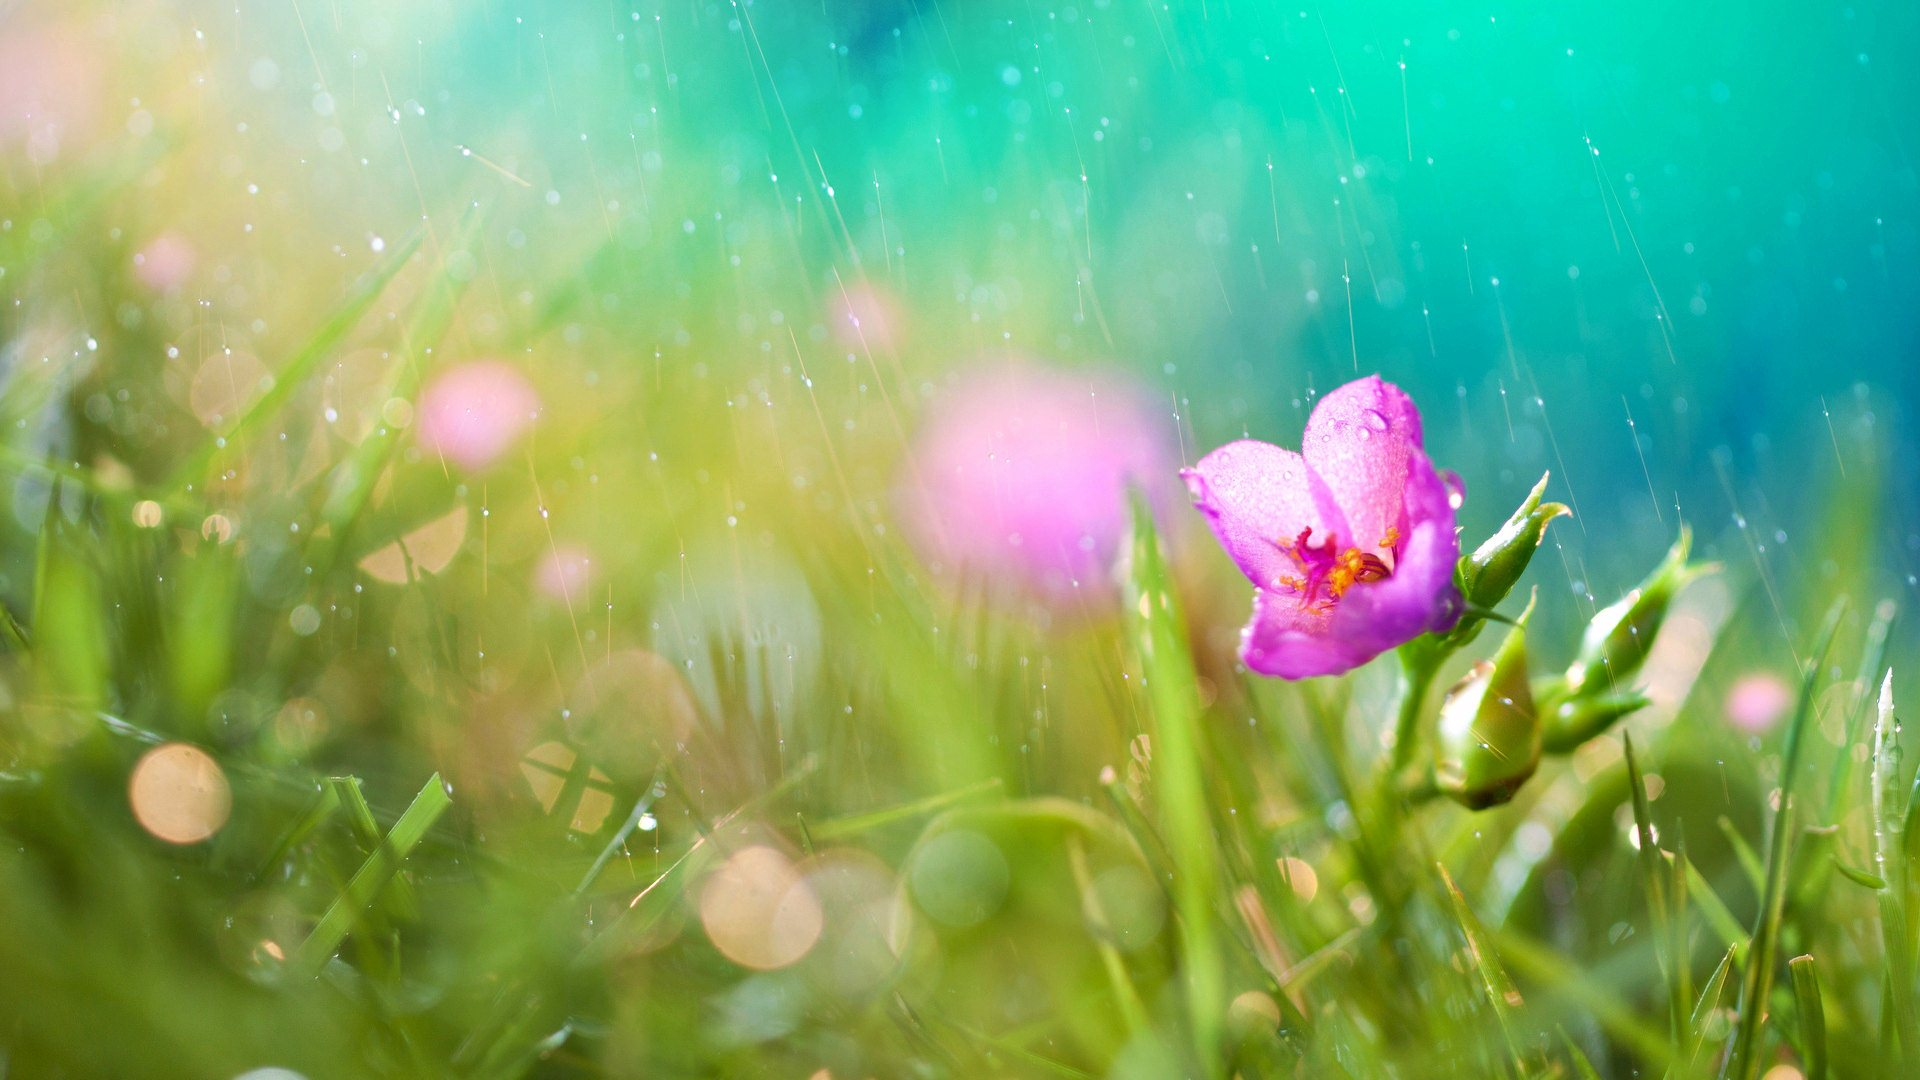 rainfall flowers free download